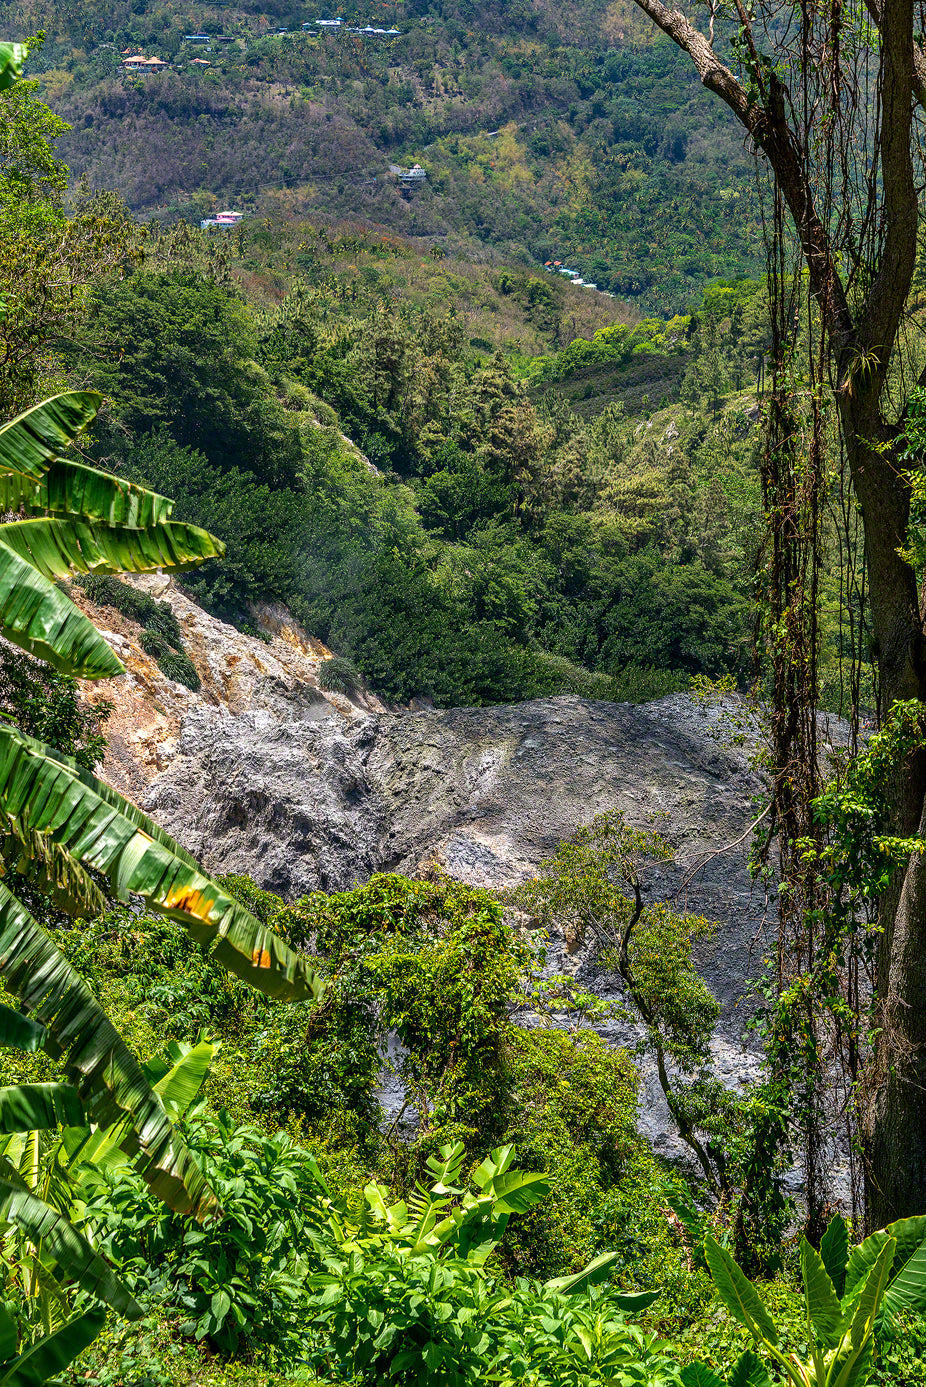 A photo of the lush tropical vegetation growing around the Volcano Soufreire in St. Lucia